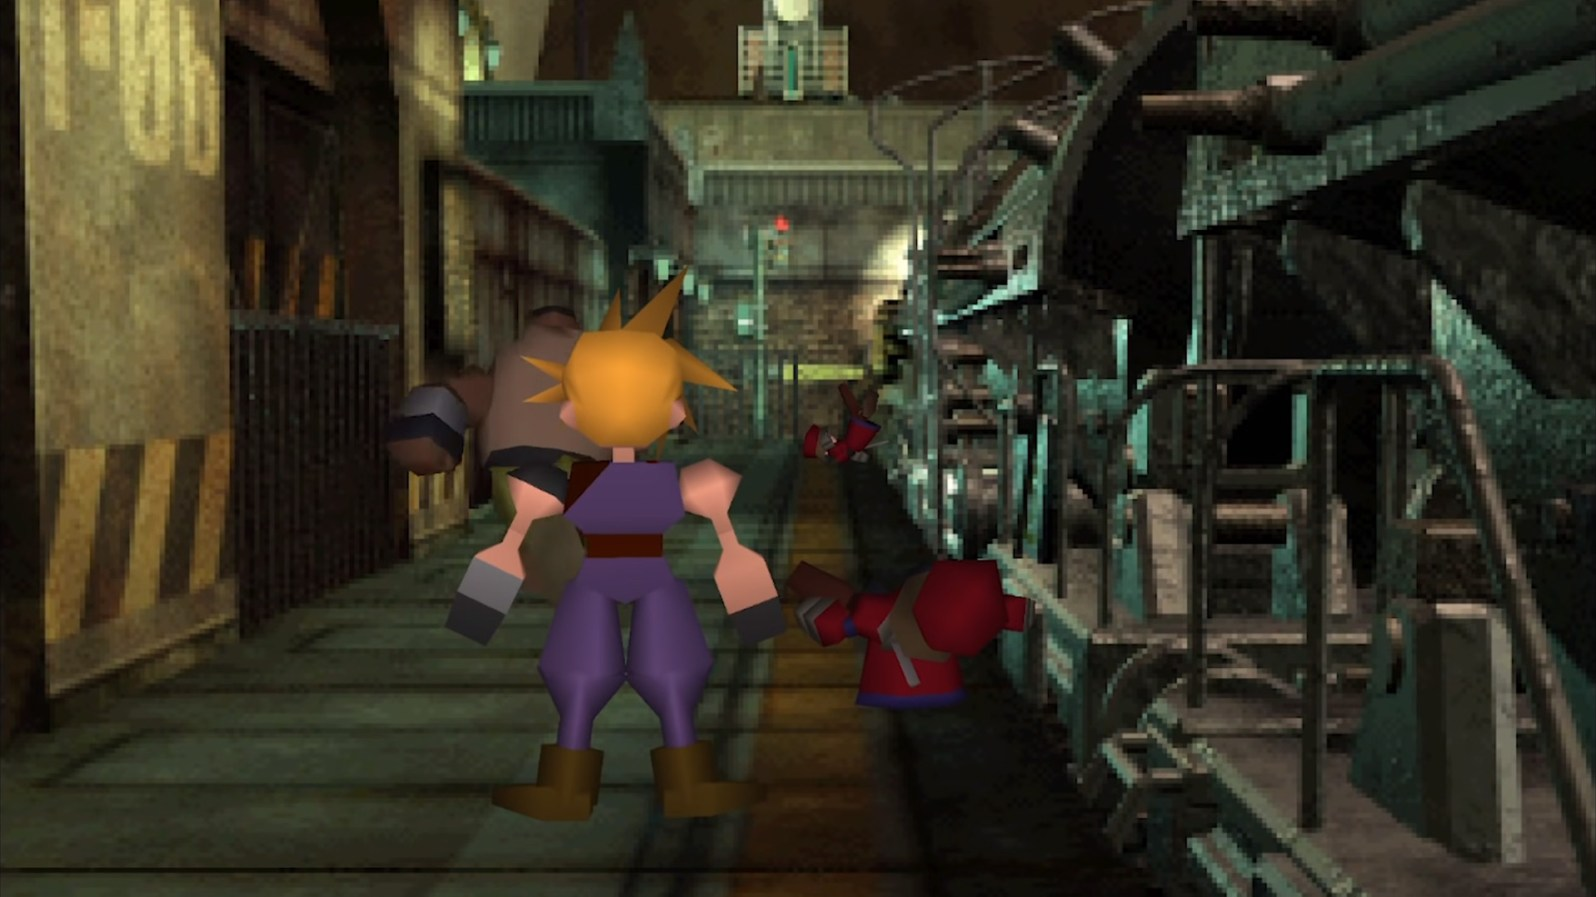 Quelle: Square Enix - Final Fantasy 7 (Zugszene)